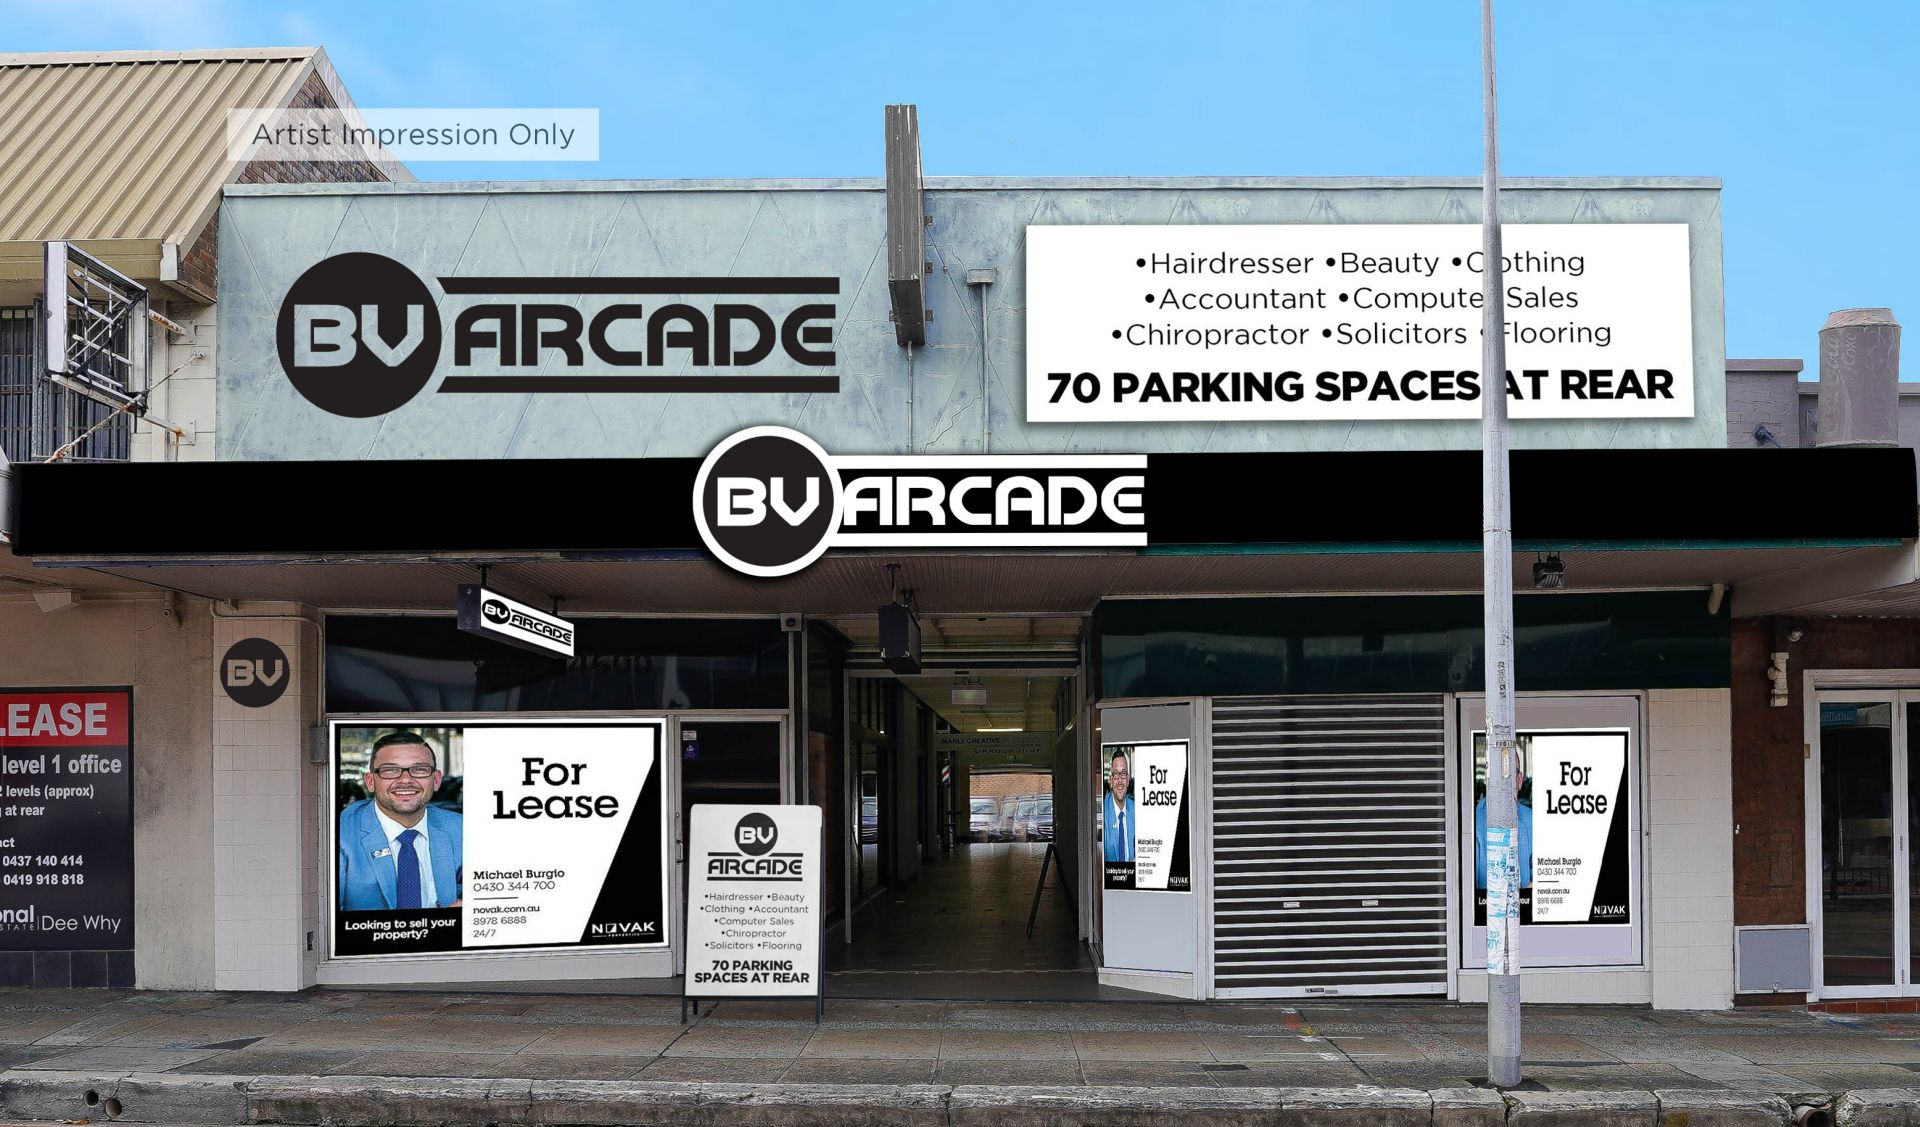 STREET FRONT RETAIL SPACE IN 'GROOVY' ARCADE